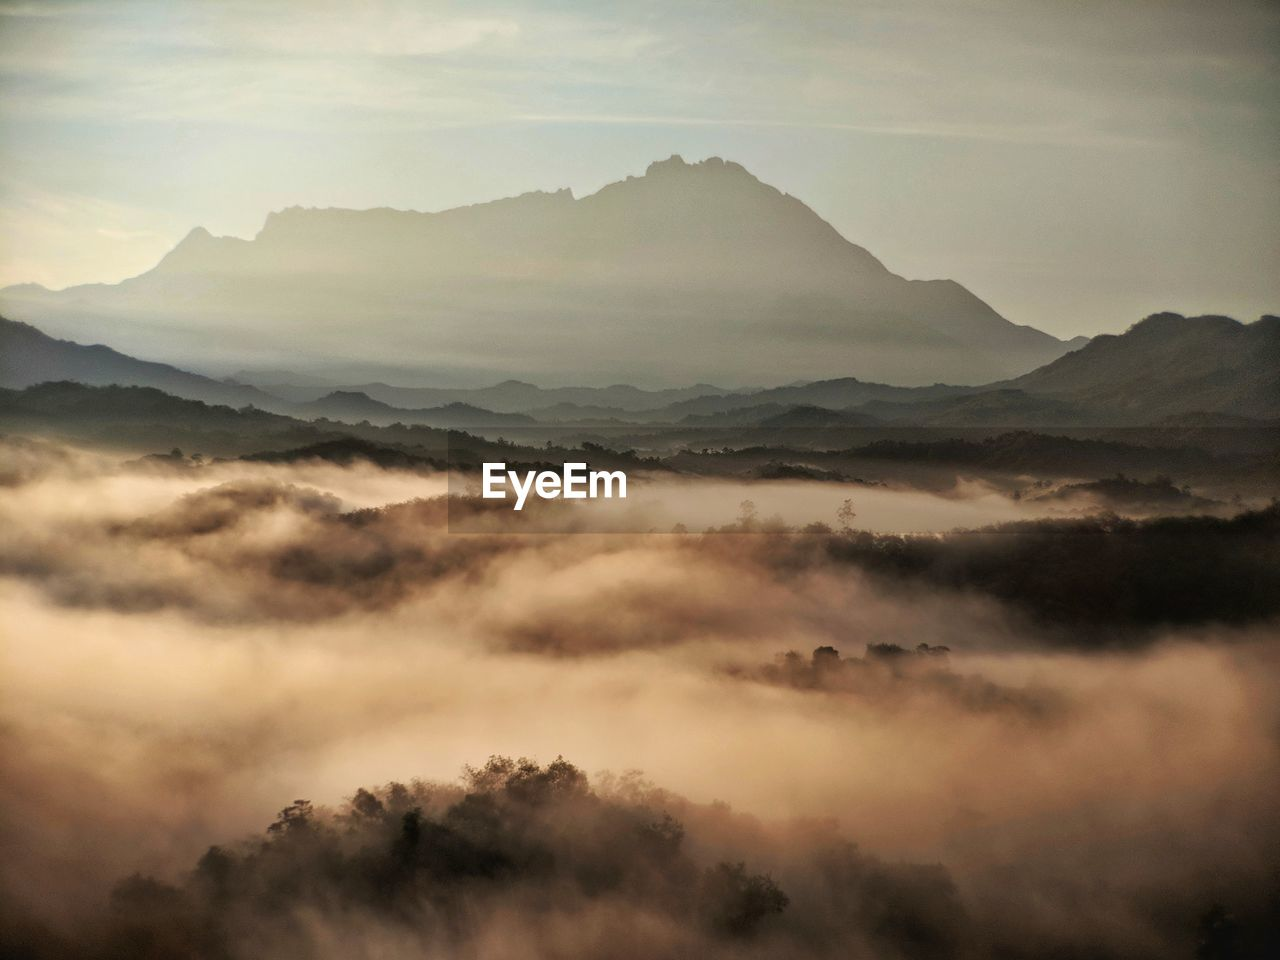 Scenic View Of Mountains In Foggy Weather During Sunset